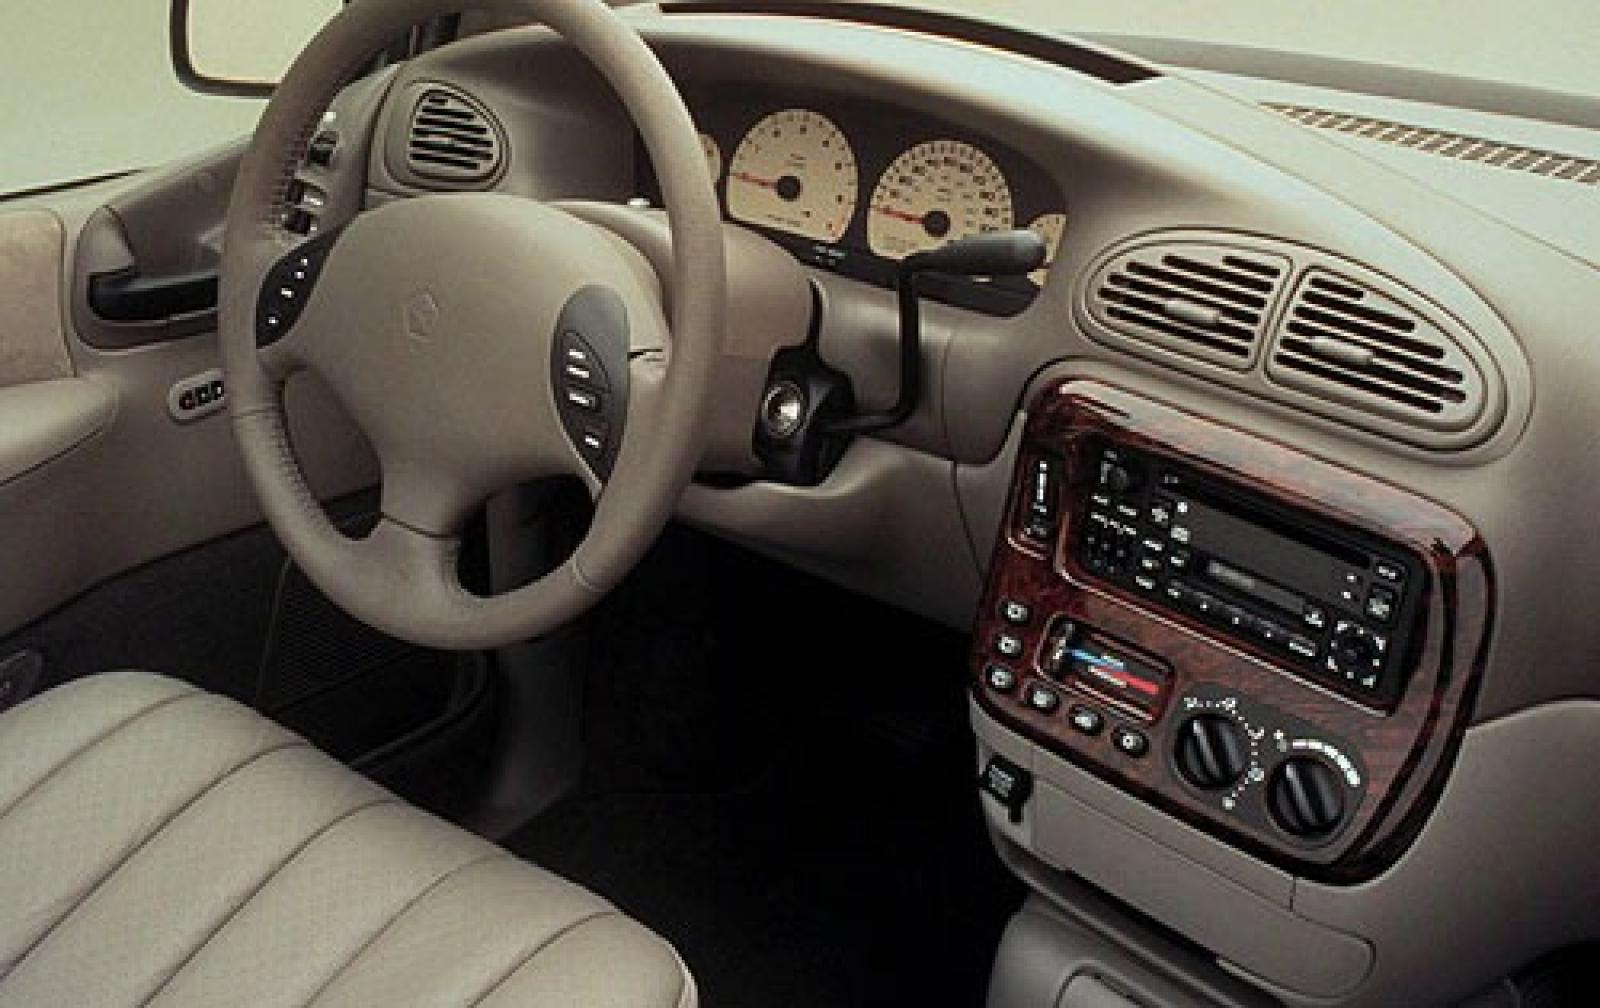 hight resolution of 800 1024 1280 1600 origin 2001 chrysler town and country